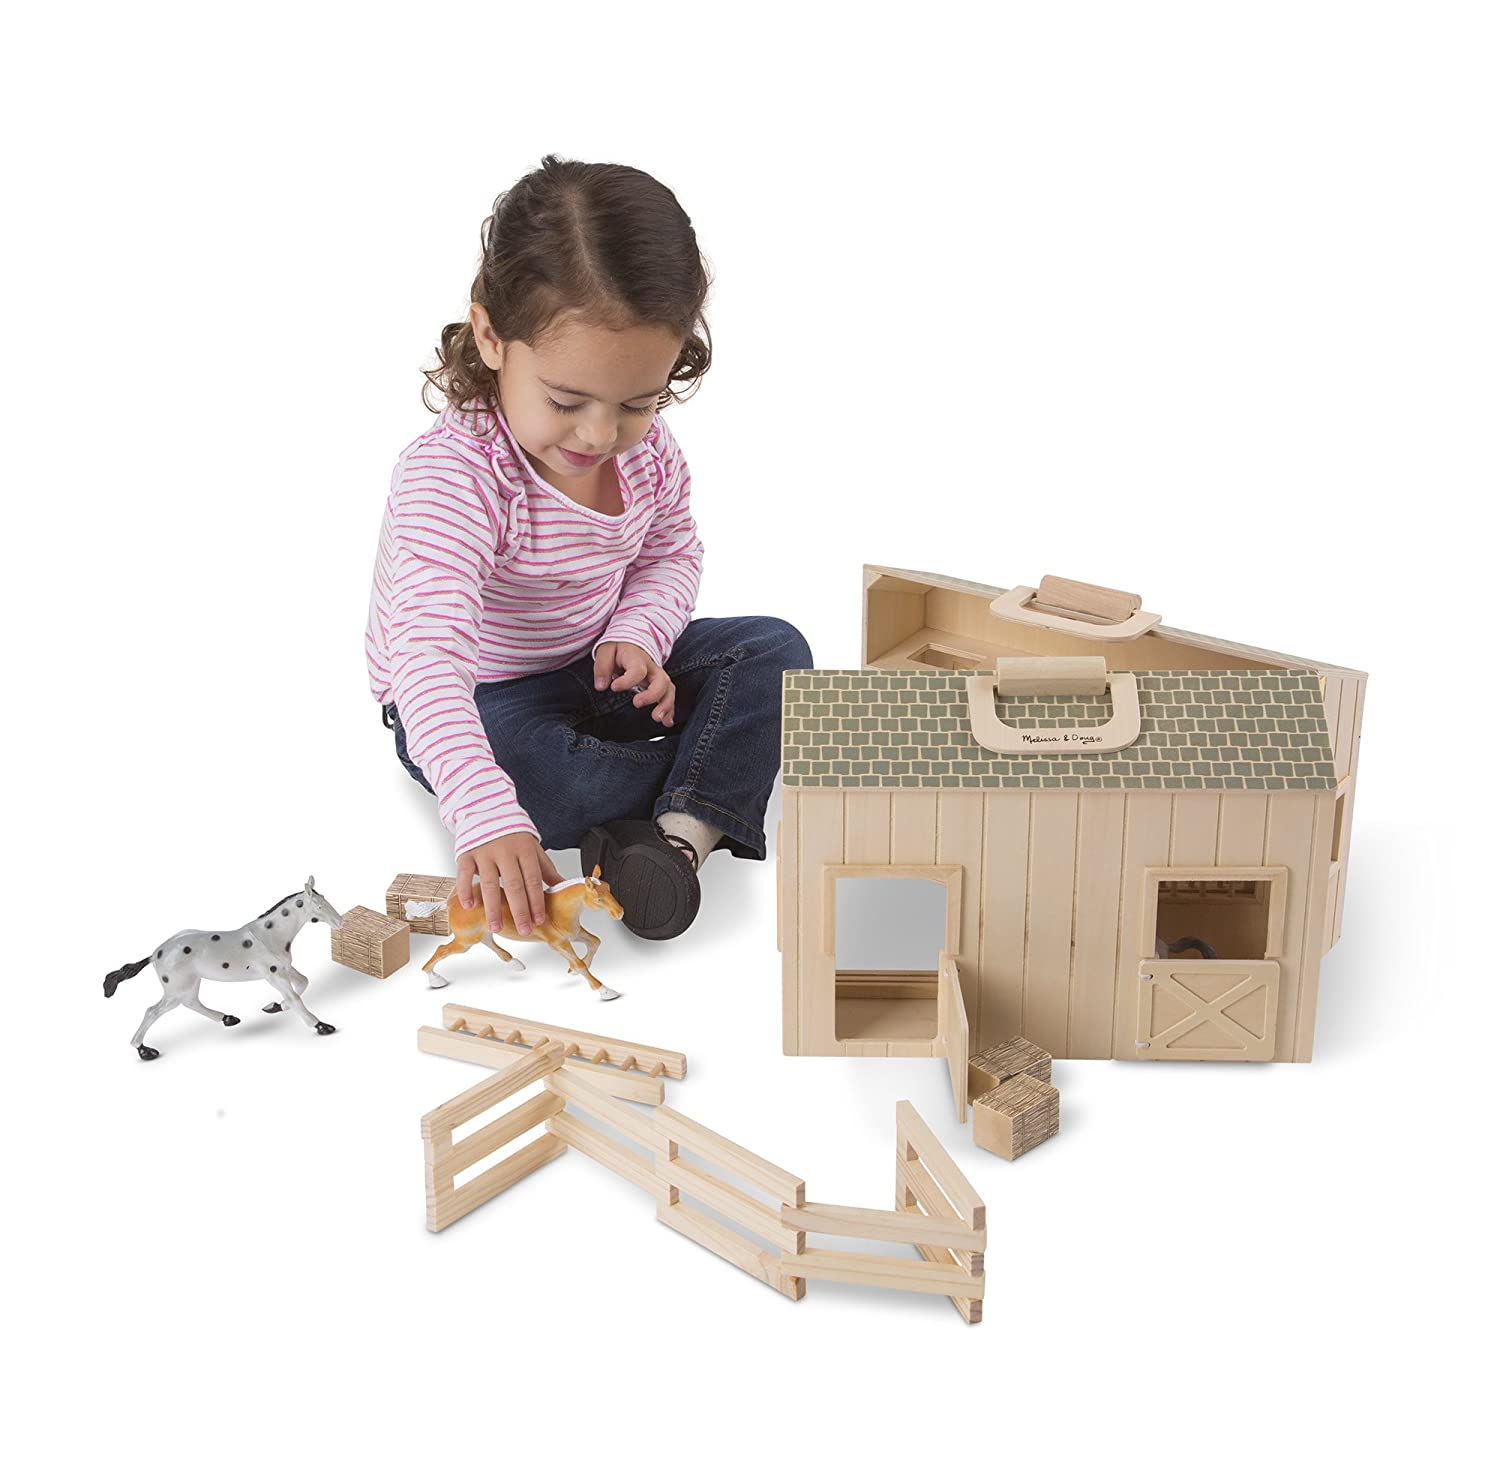 Melissa and Doug Fold and Go Stable Christmas ideas 5 year old girl